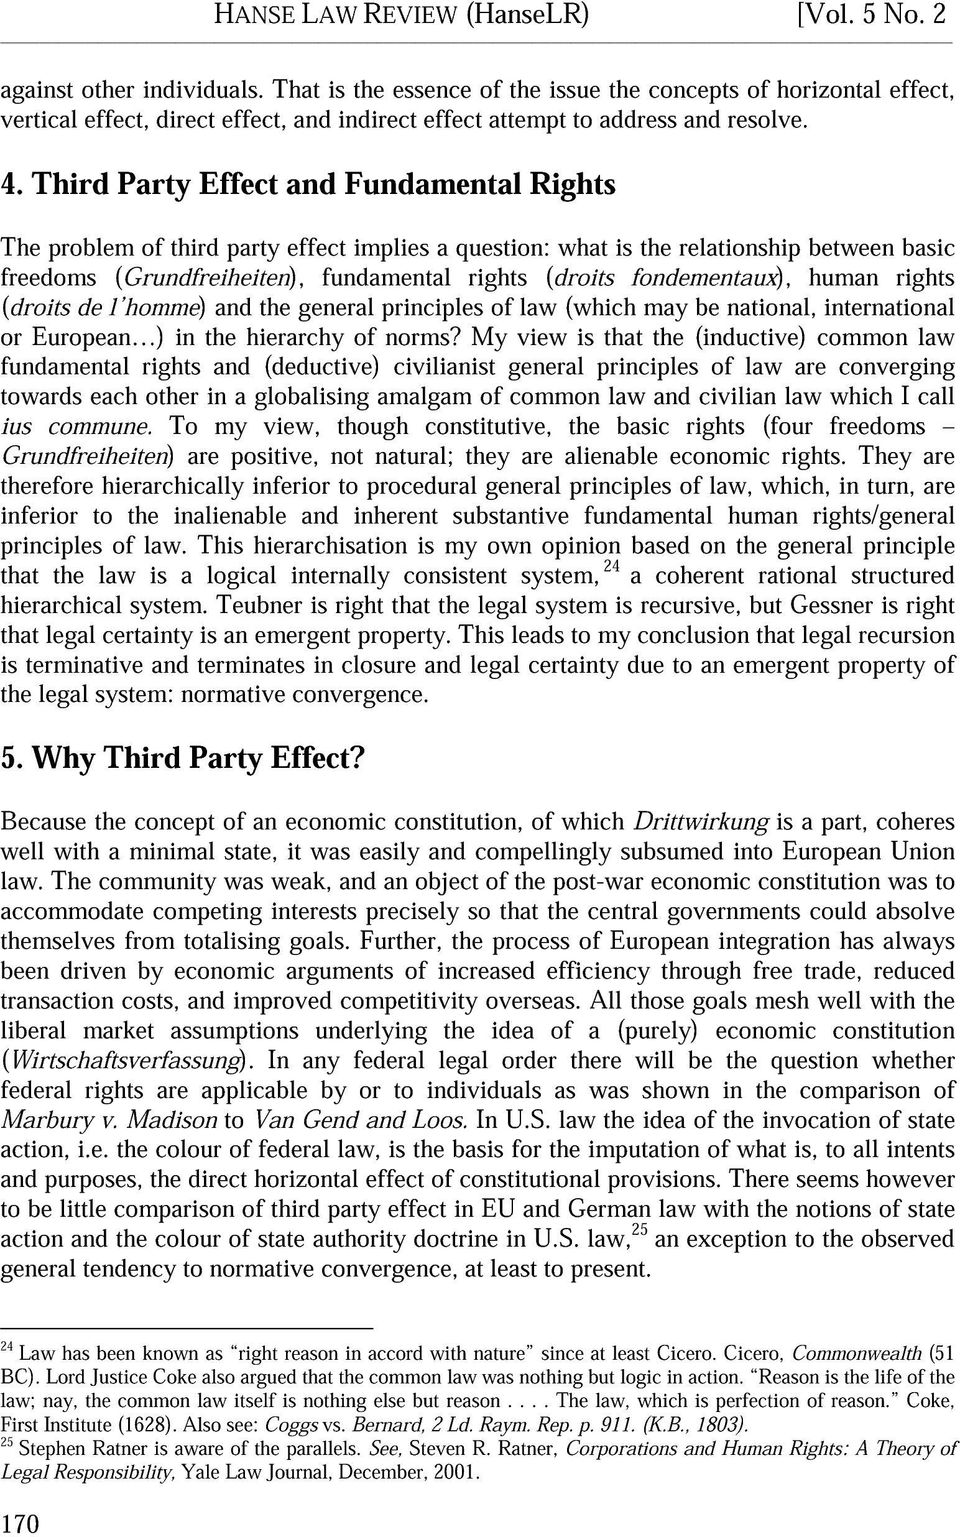 Third Party Effect and Fundamental Rights The problem of third party effect implies a question: what is the relationship between basic freedoms (Grundfreiheiten), fundamental rights (droits